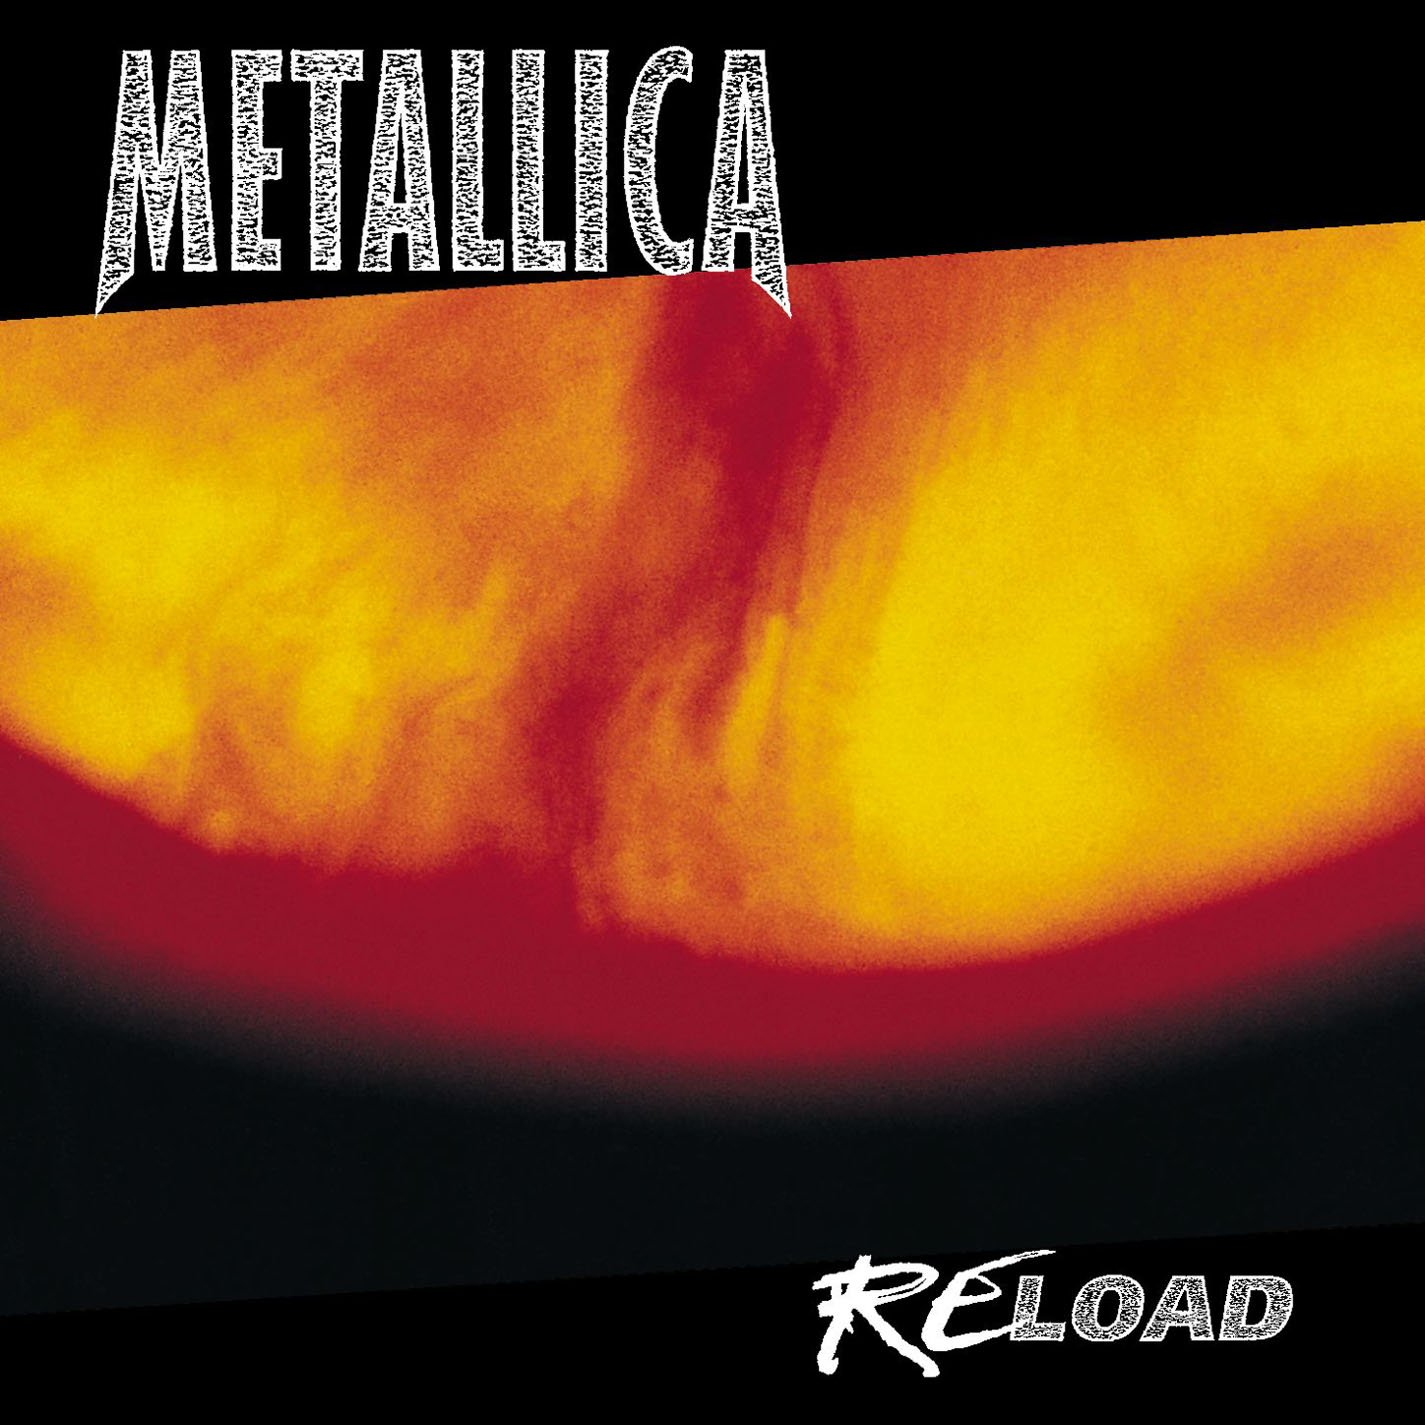 CD : Metallica - Re-Load (CD)